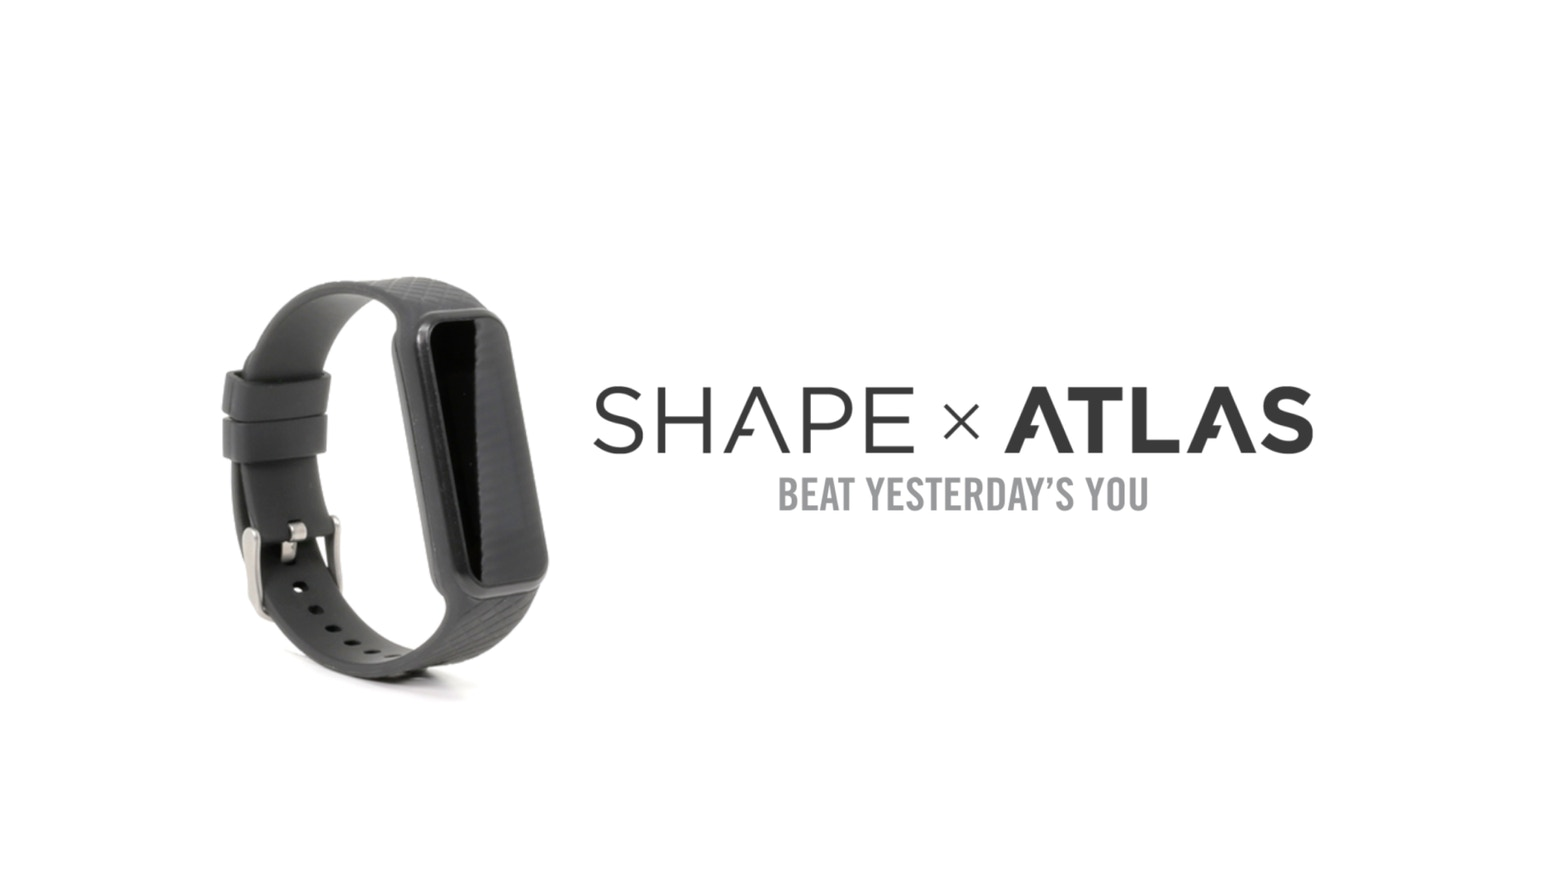 A Personal Coach Anywhere, Anytime: Guided workouts +intelligent coaching based off your activity, sleep, and progress.